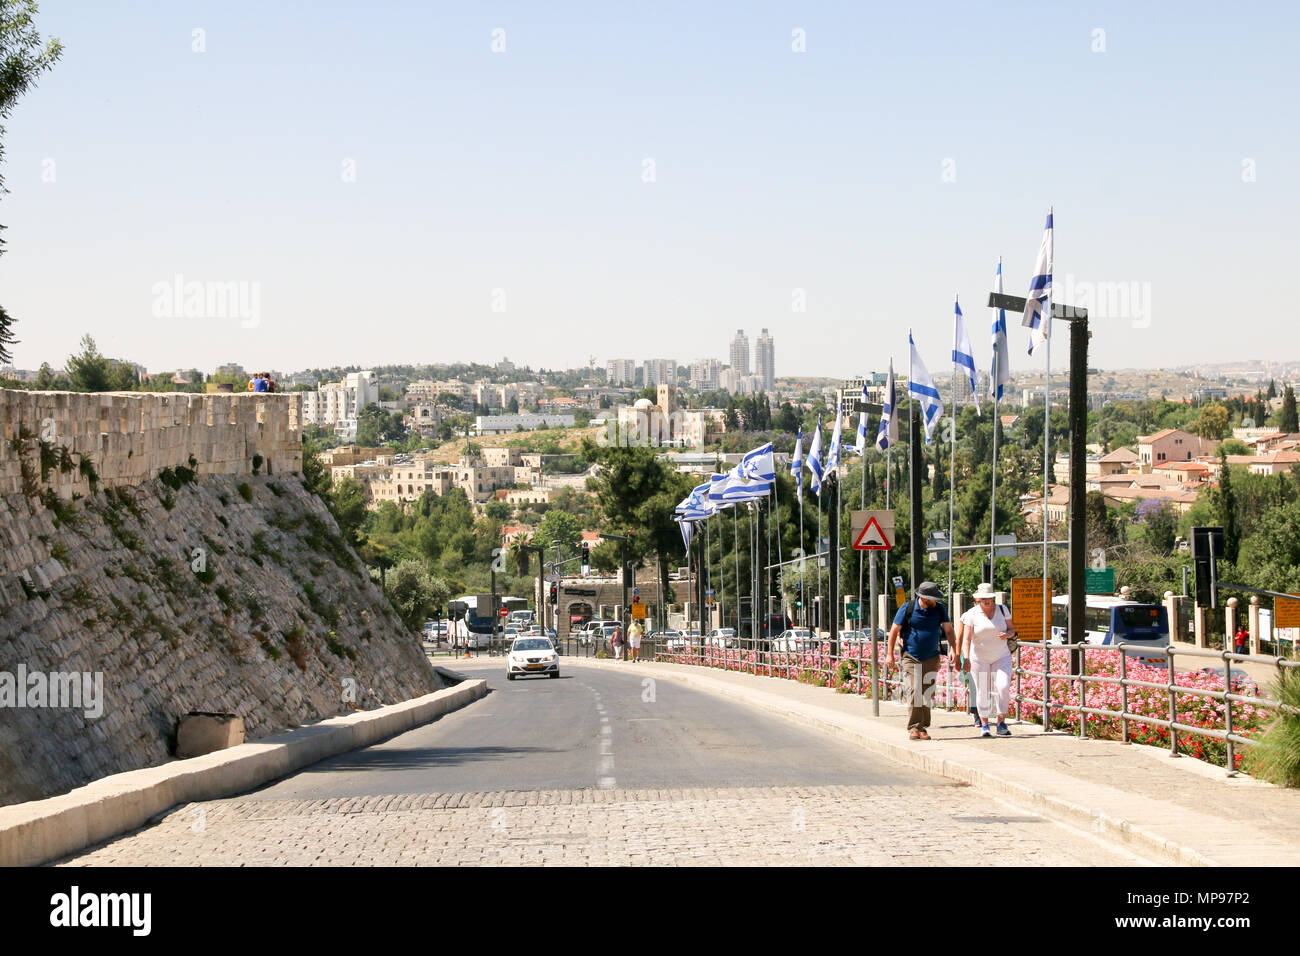 Jerusalem, Israel - May 16, 2018: View of the access road to the Jaffa Gate in Jerusalem, Israel. - Stock Image